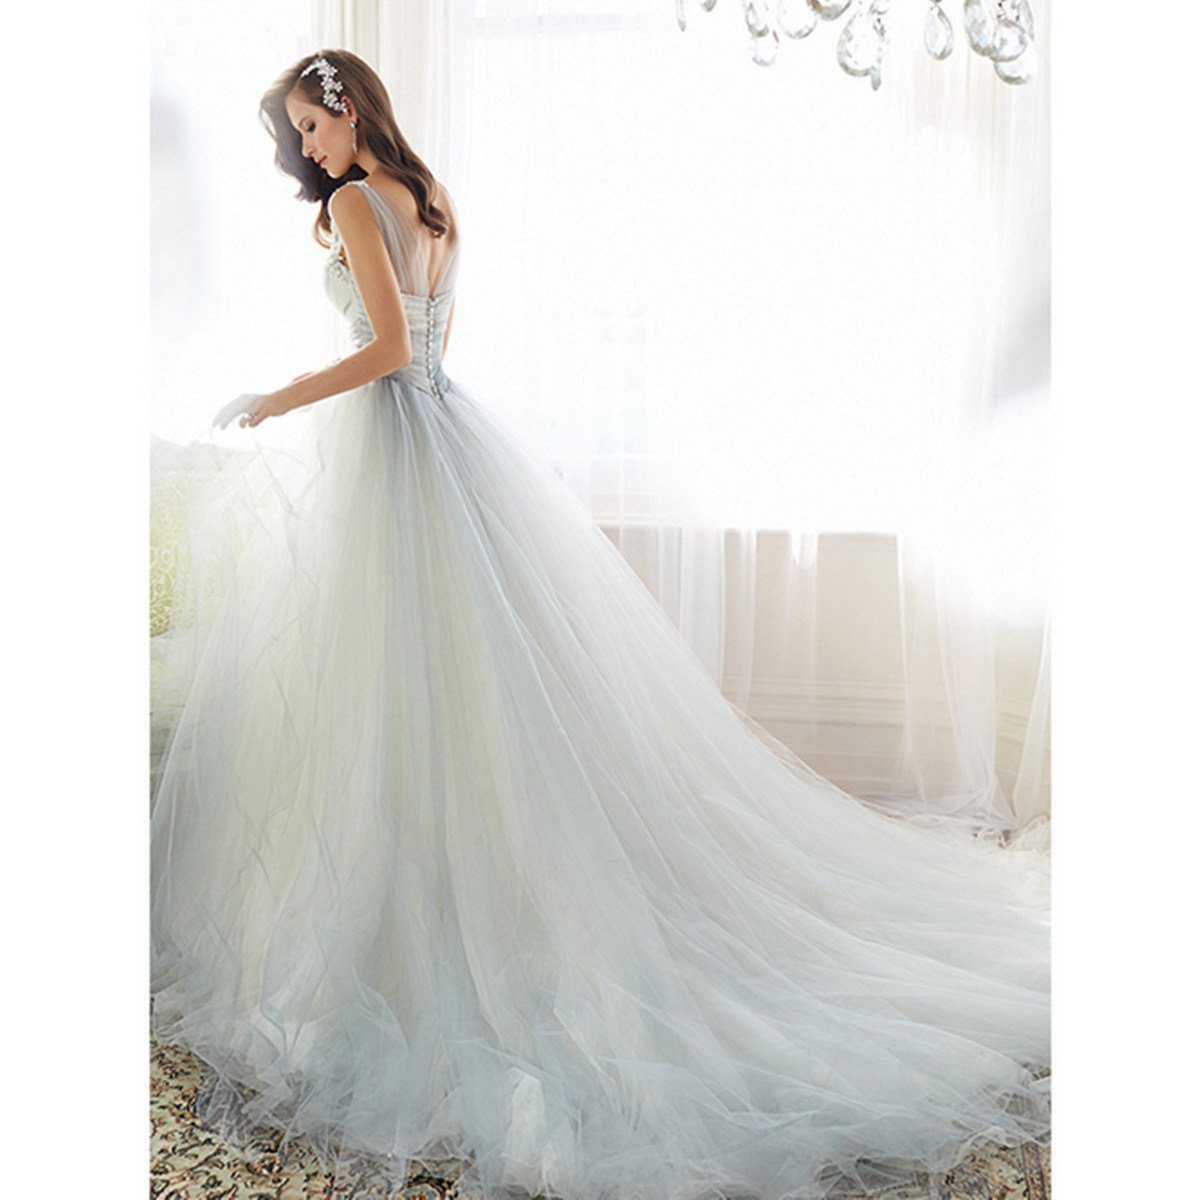 2017 Collection A-Line Tulle Wedding Dress Bridal Gown Dress (Dream-100005) pictures & photos